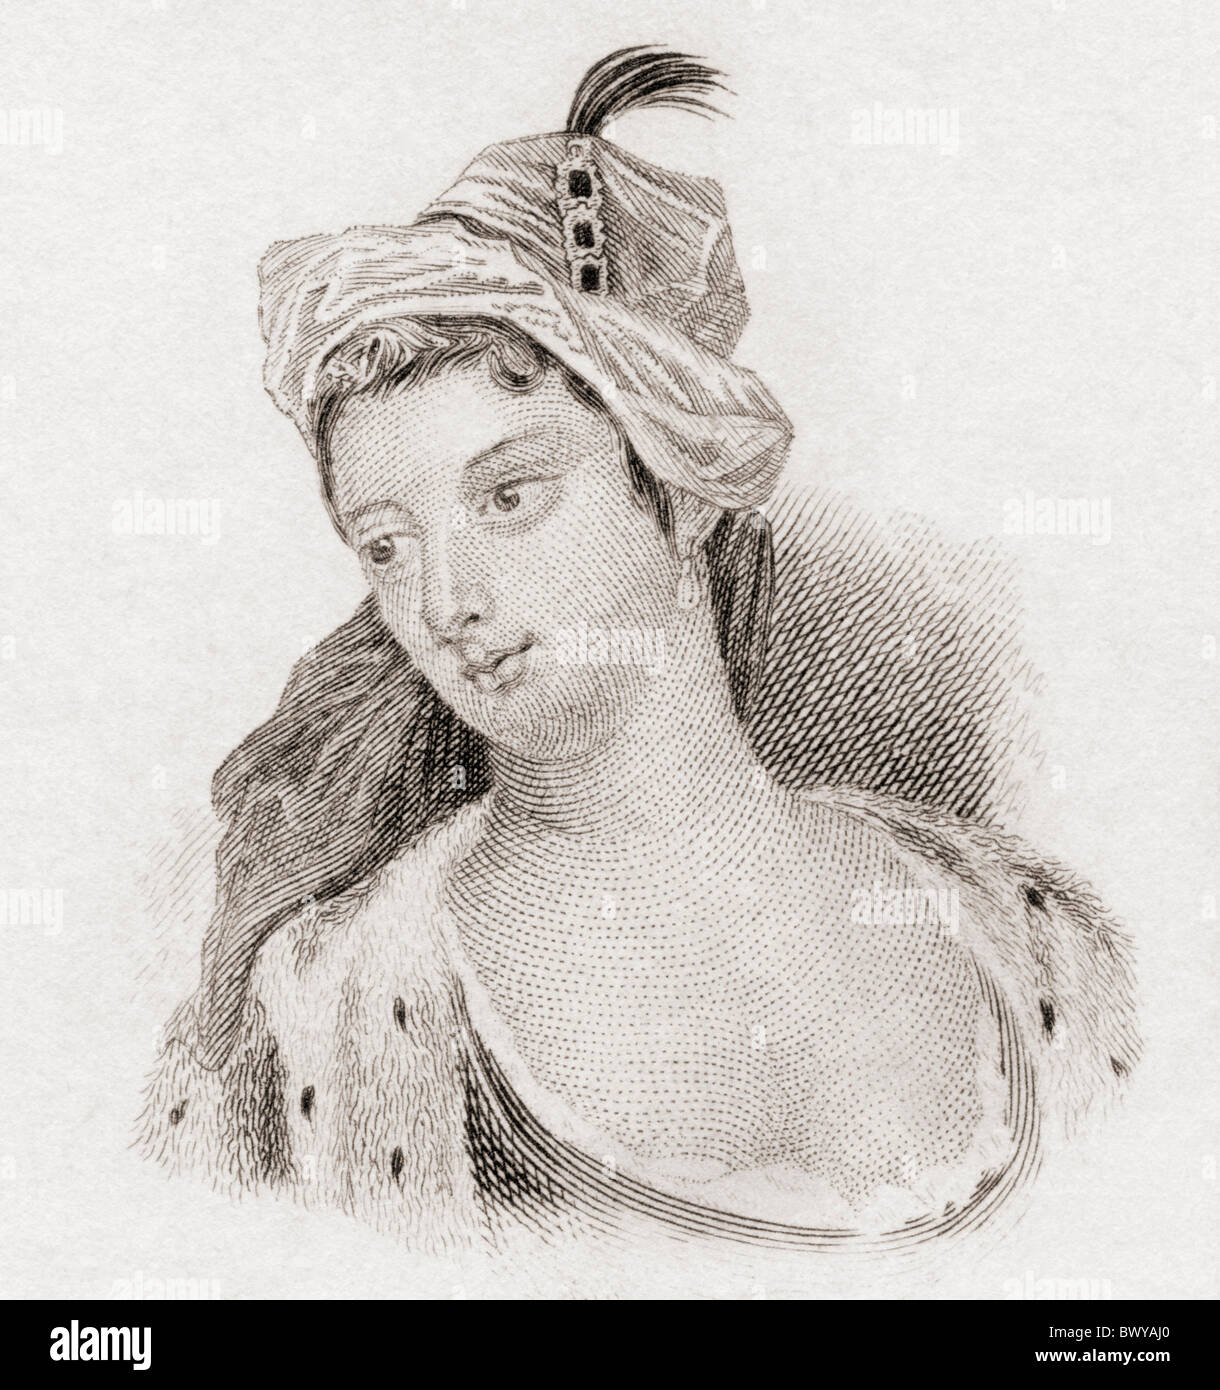 The Lady Mary Wortley Montagu, 1689 to 1762. English aristocrat and writer. - Stock Image